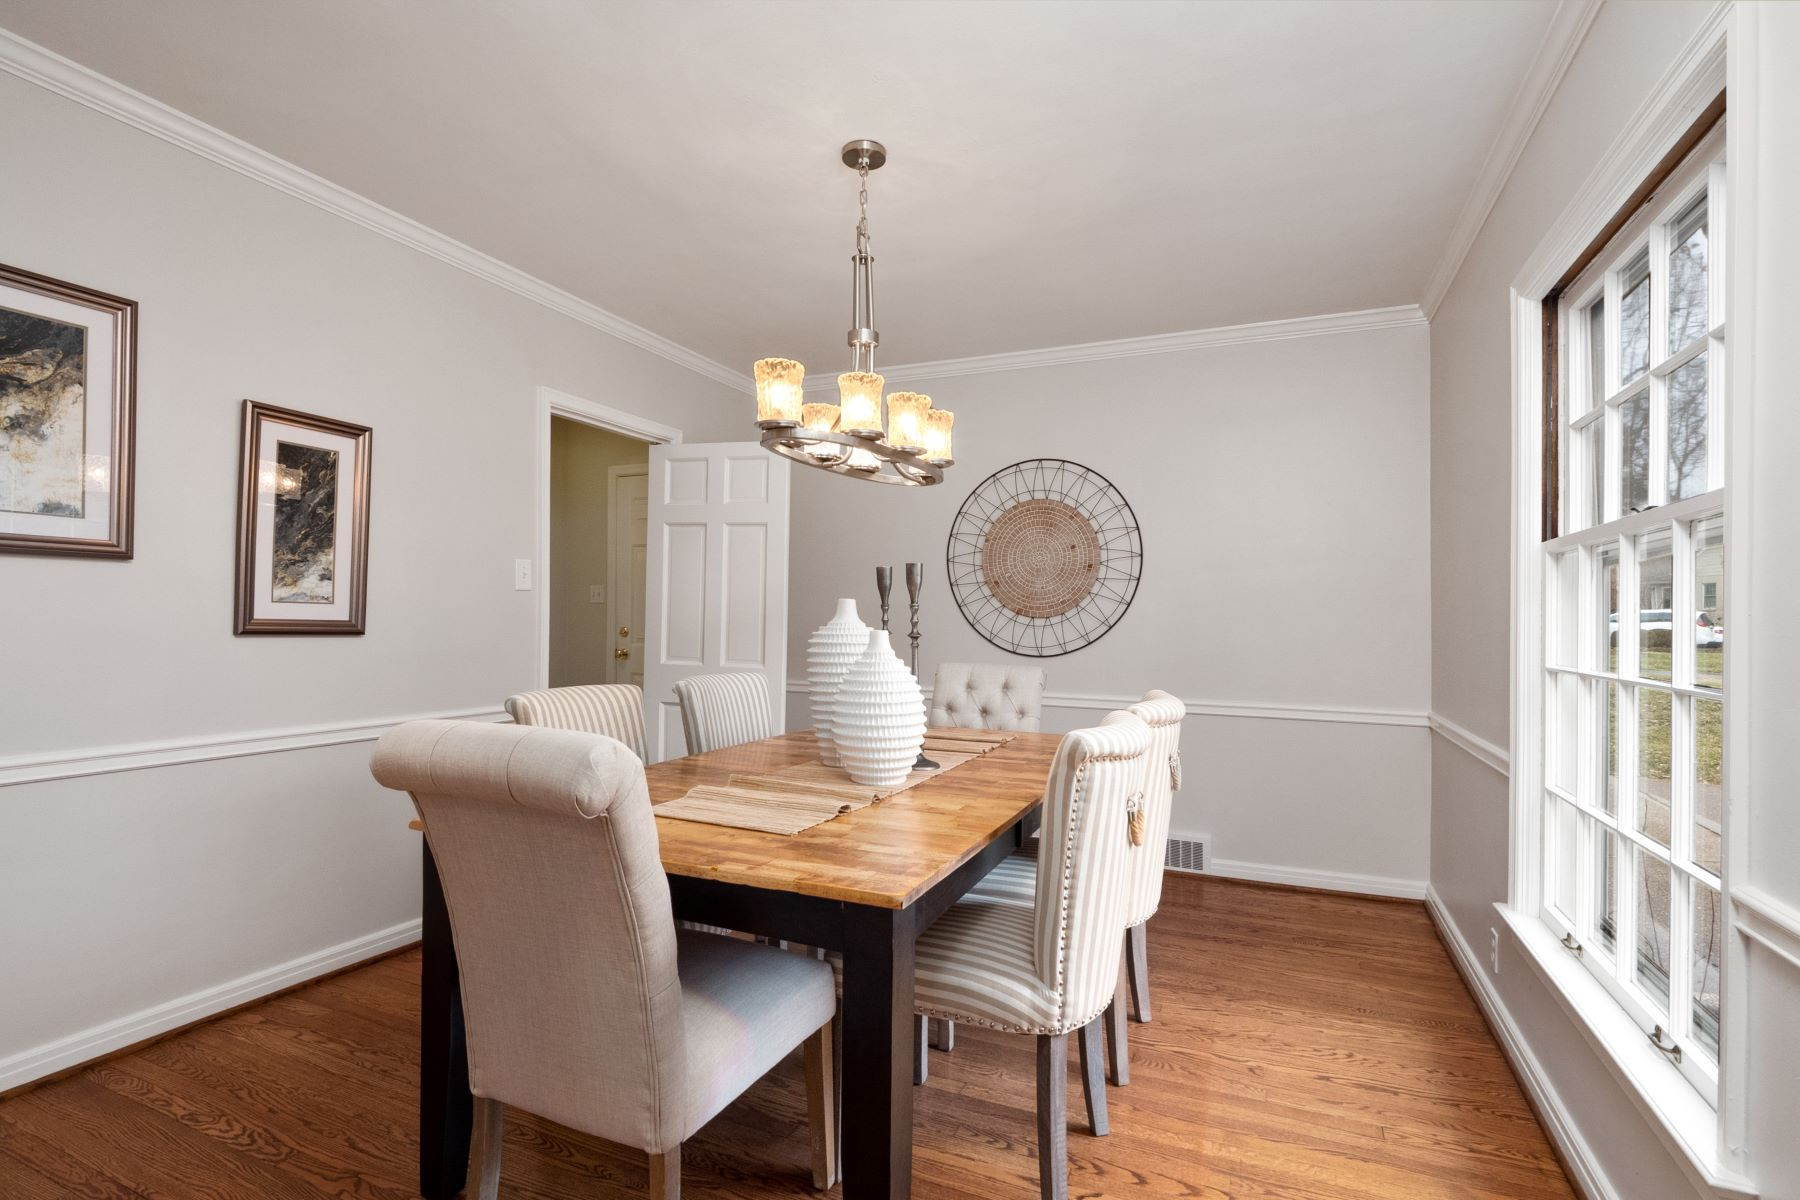 Additional photo for property listing at Beautiful Executive Home in Charming Neighborhood 34 Hill Drive Kirkwood, Missouri 63122 United States